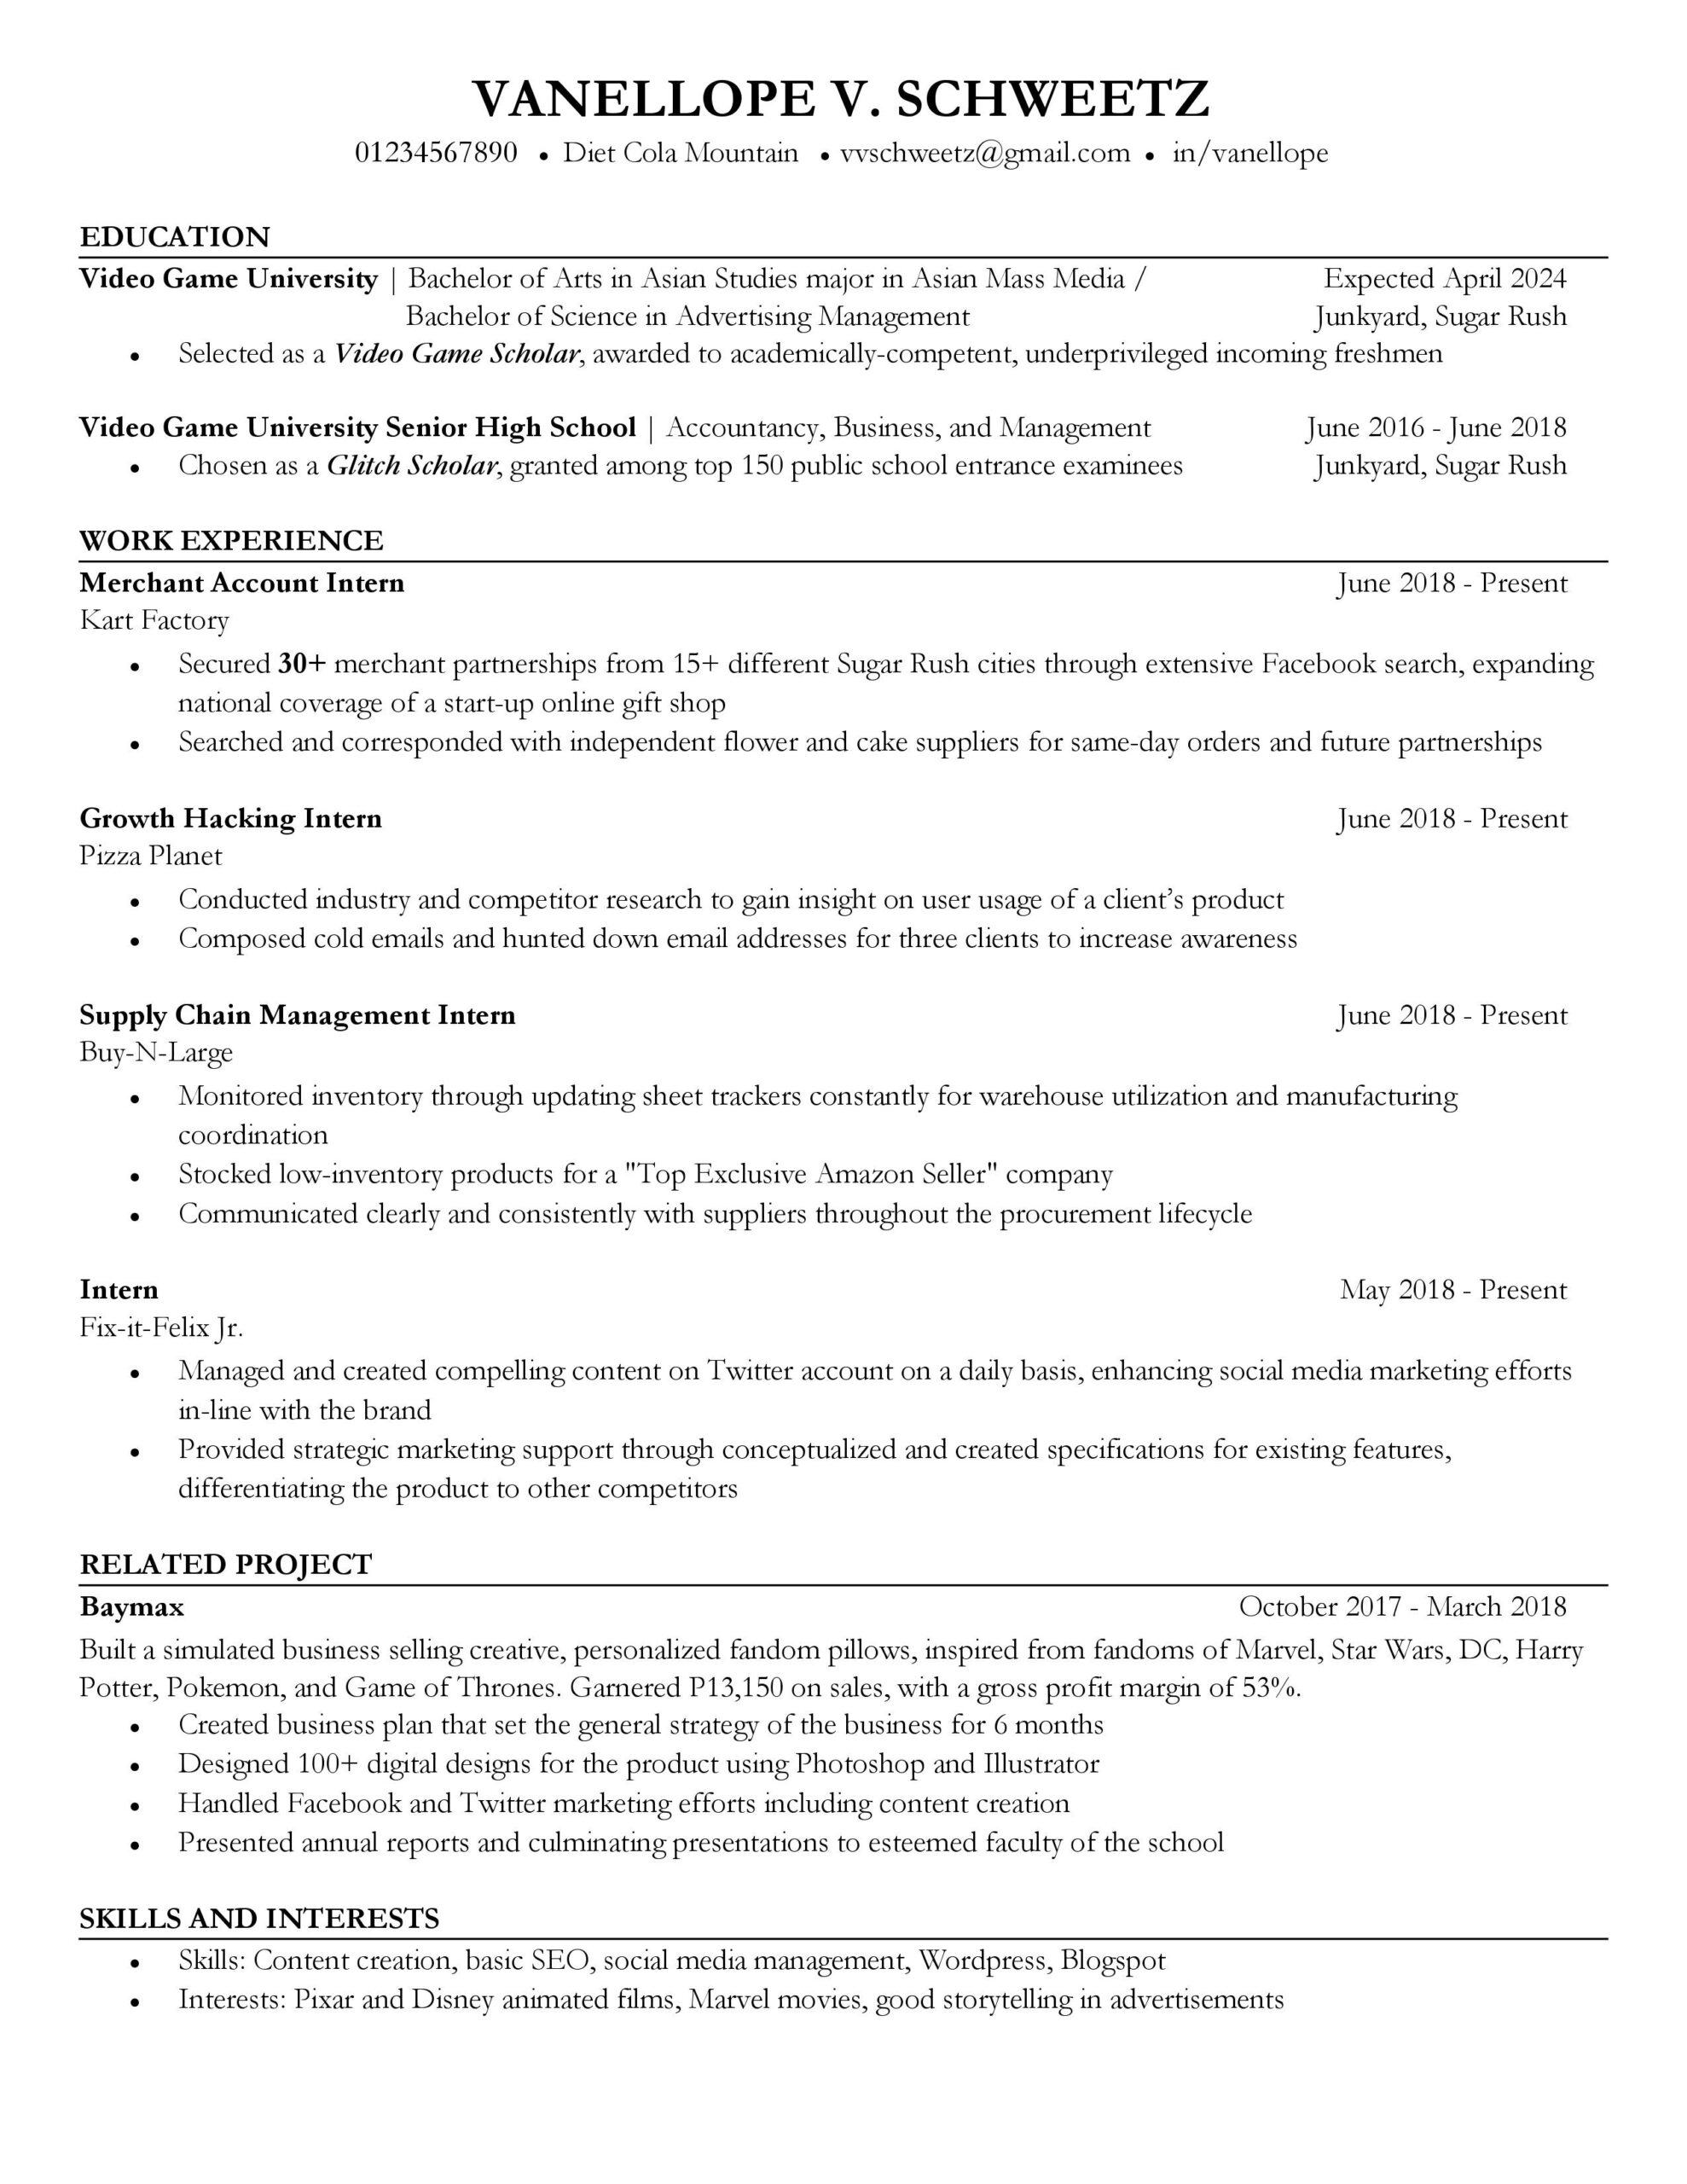 ve reviewed and screened thousands of resumes am sharing my preferred resume format free Resume Resume Writing Services Reddit